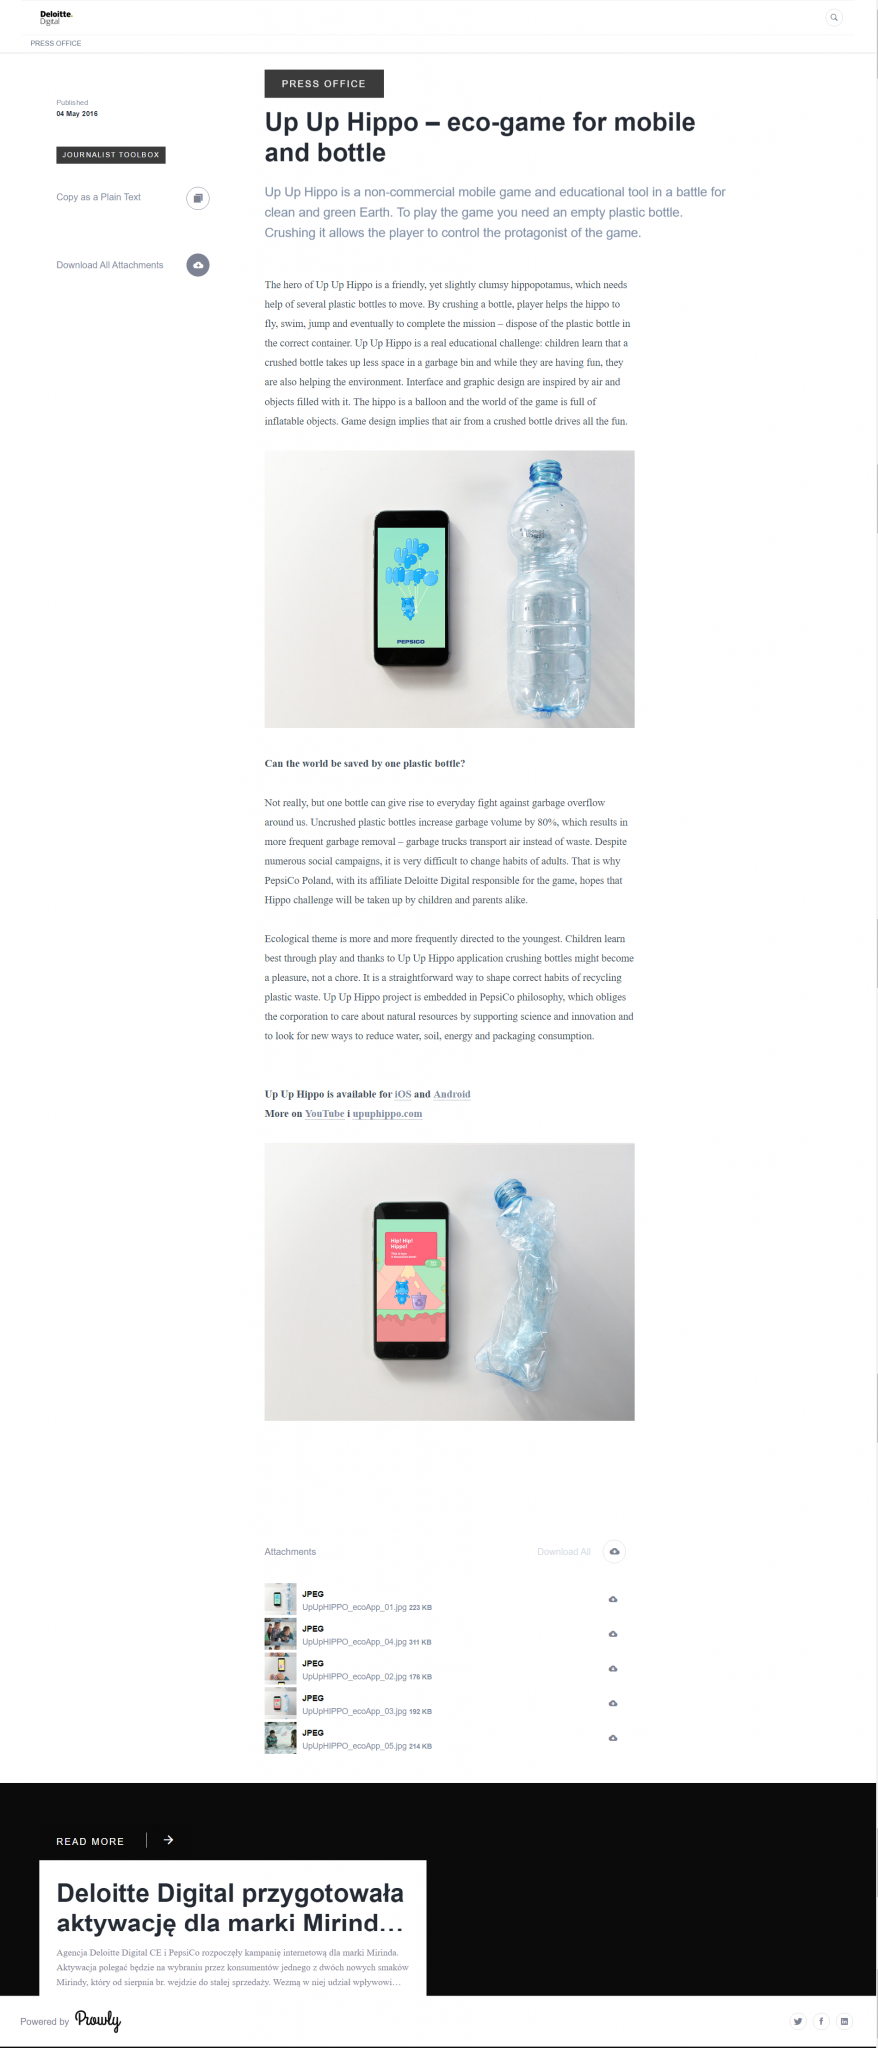 Up Up Hippo – eco game for mobile and bottle, Deloitte Digital CE Press Office